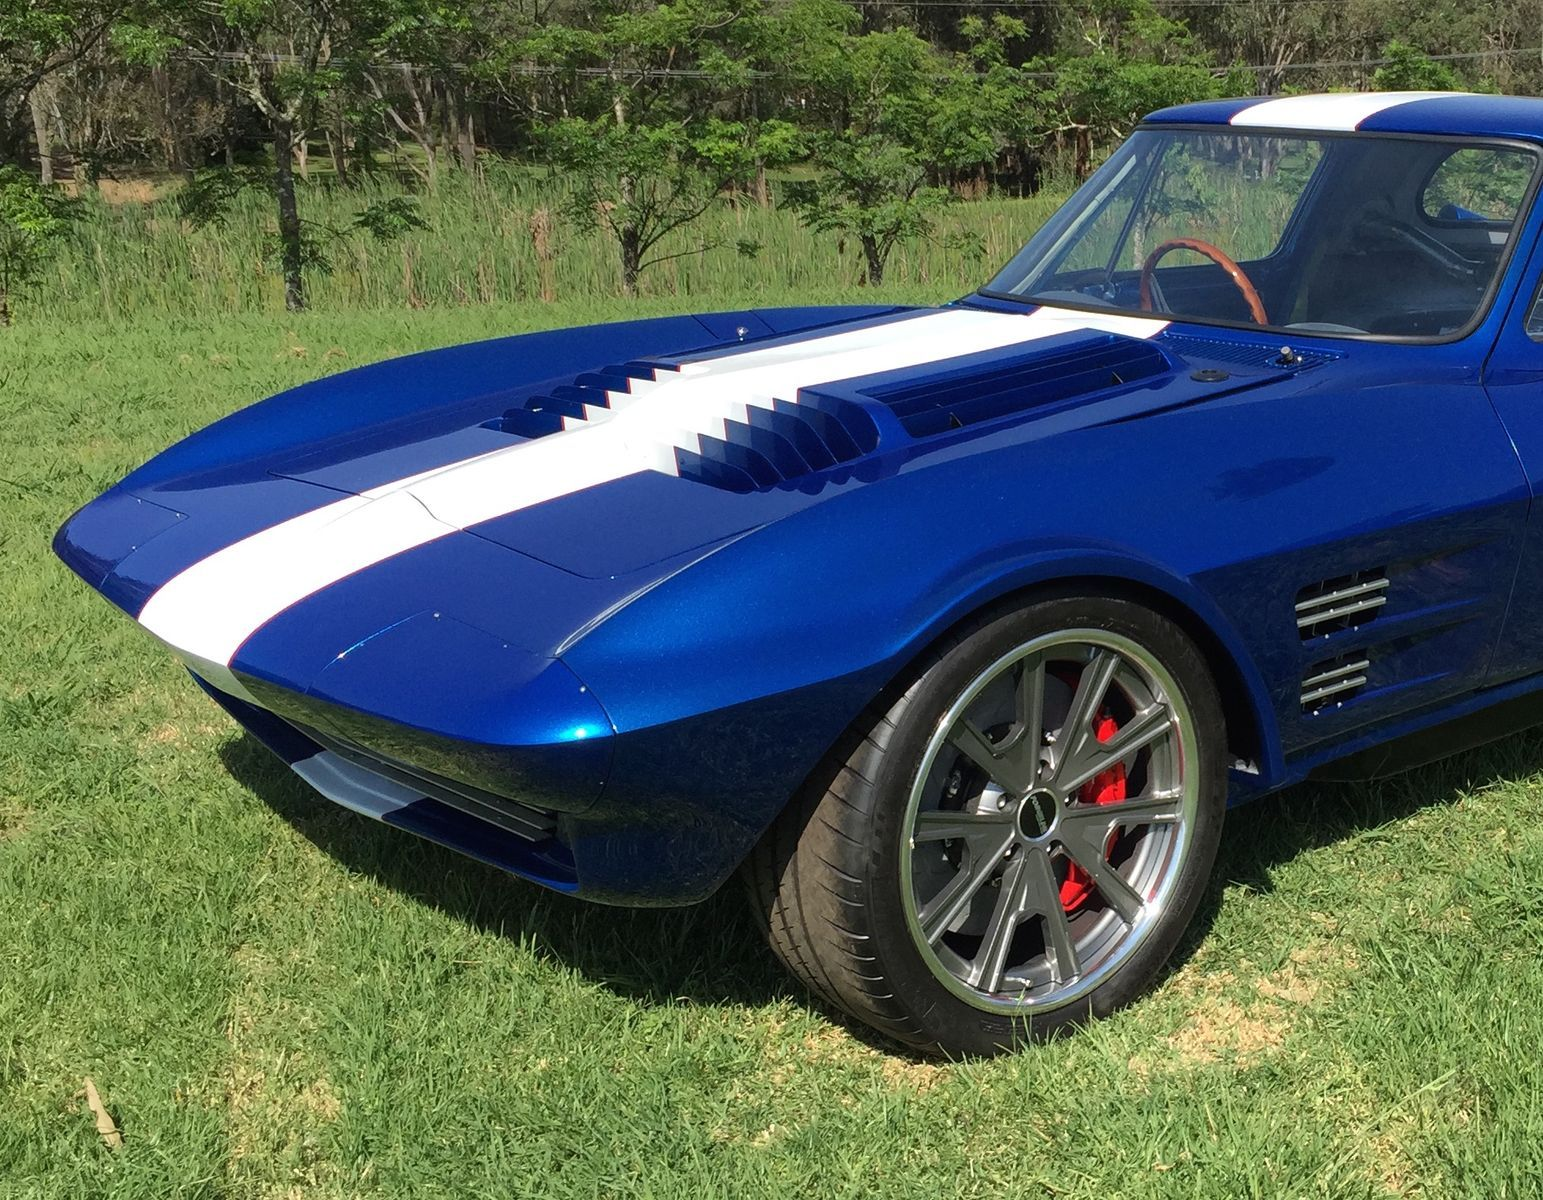 1963 Chevrolet Corvette | Harry Turner's 1963 Corvette Grand Sport on Grip Equipped Grudge Wheels